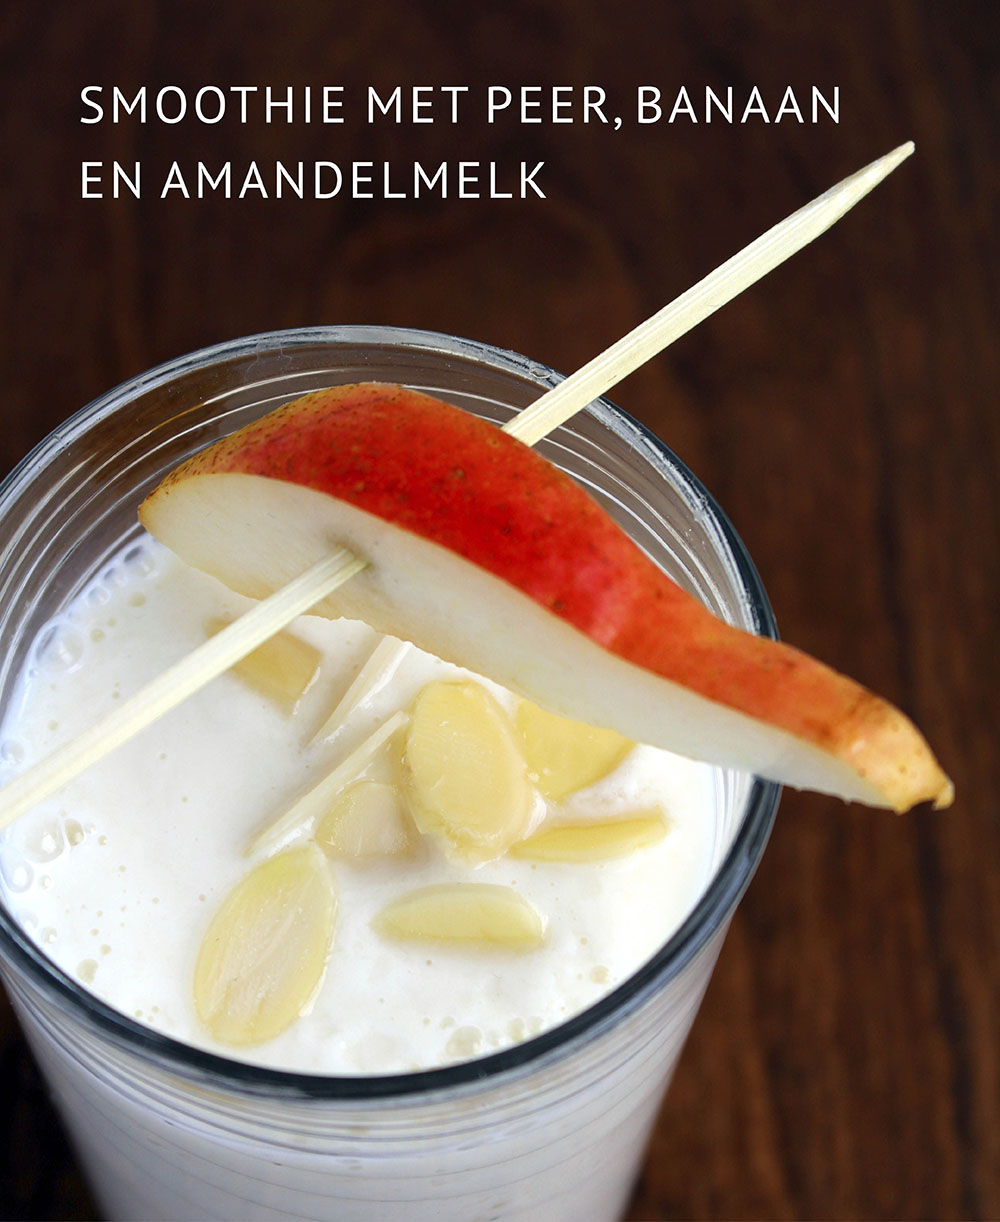 Empty the fridge - Smoothie met peer banaan en amandelmelk